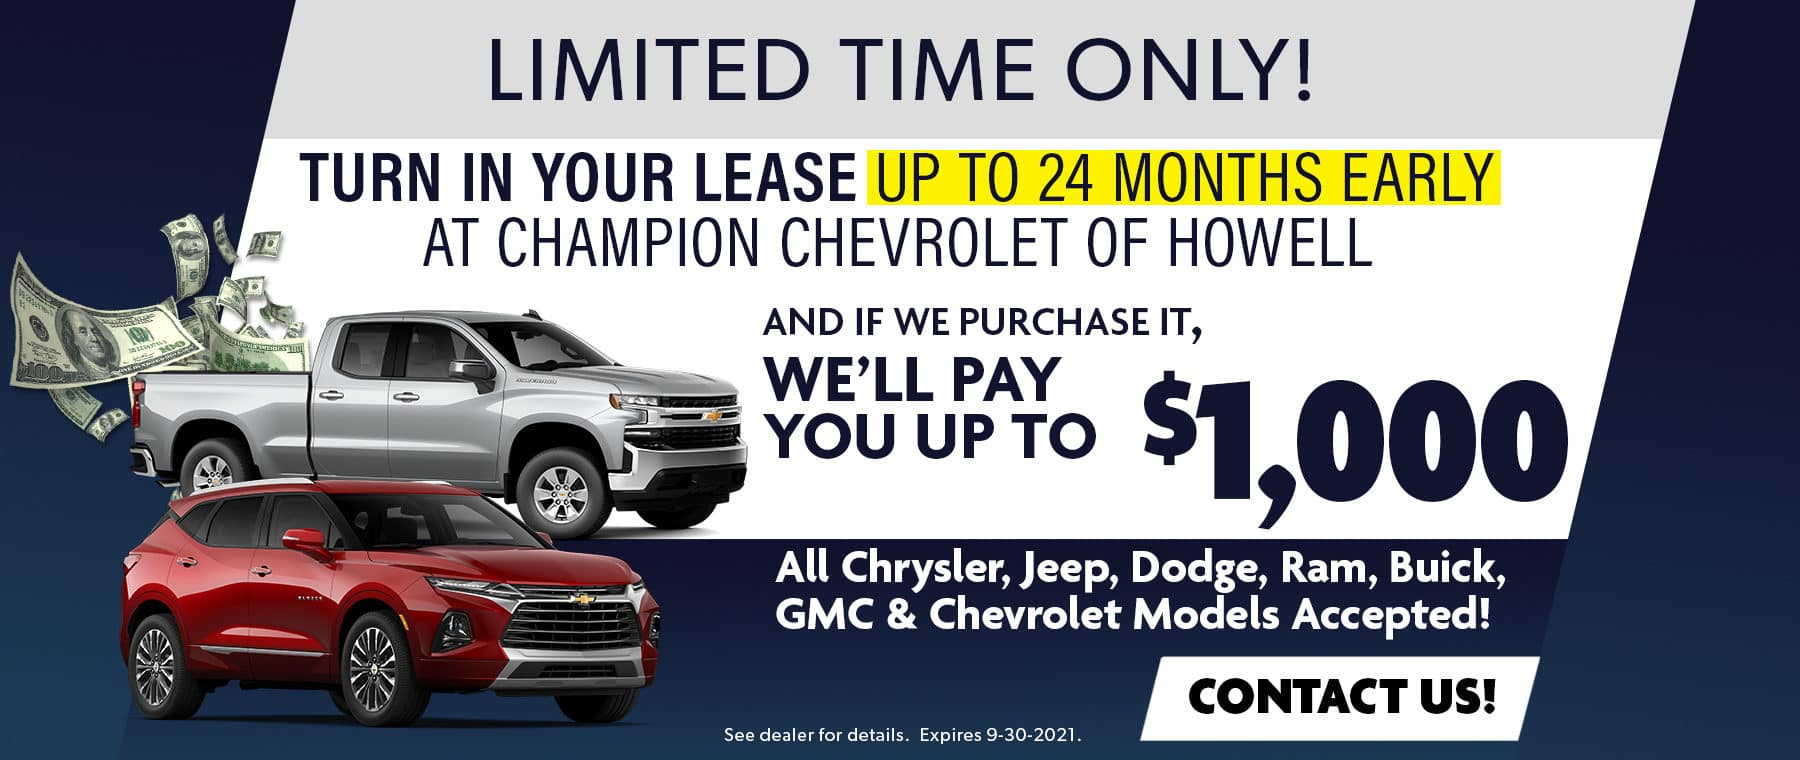 9_21_Champion_Howell_Chevrolet_1800x760_lease_web_banner